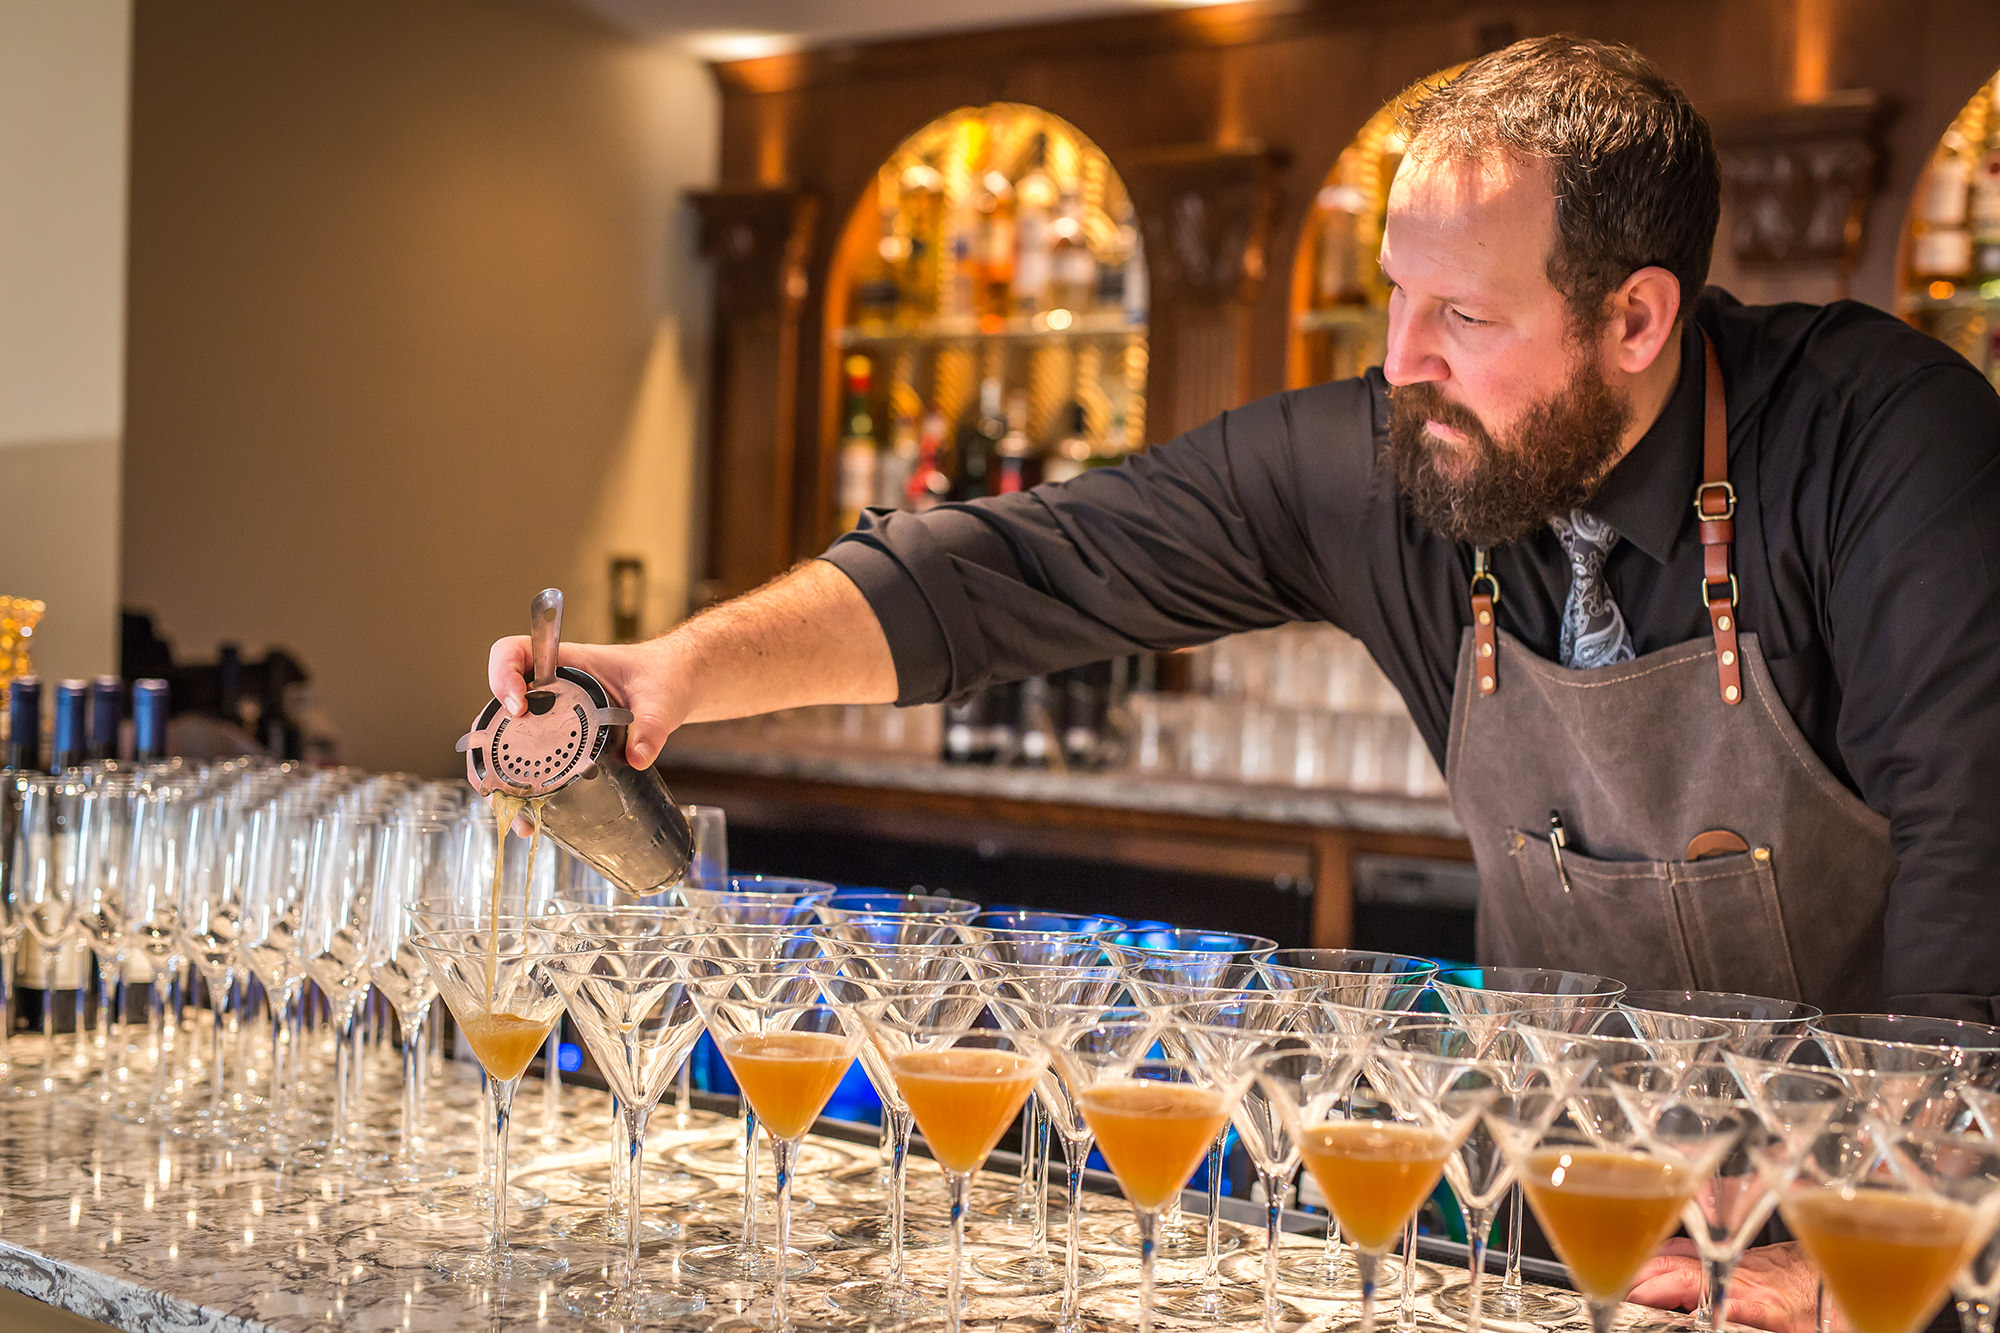 Bartender Pouring Signature Cocktail